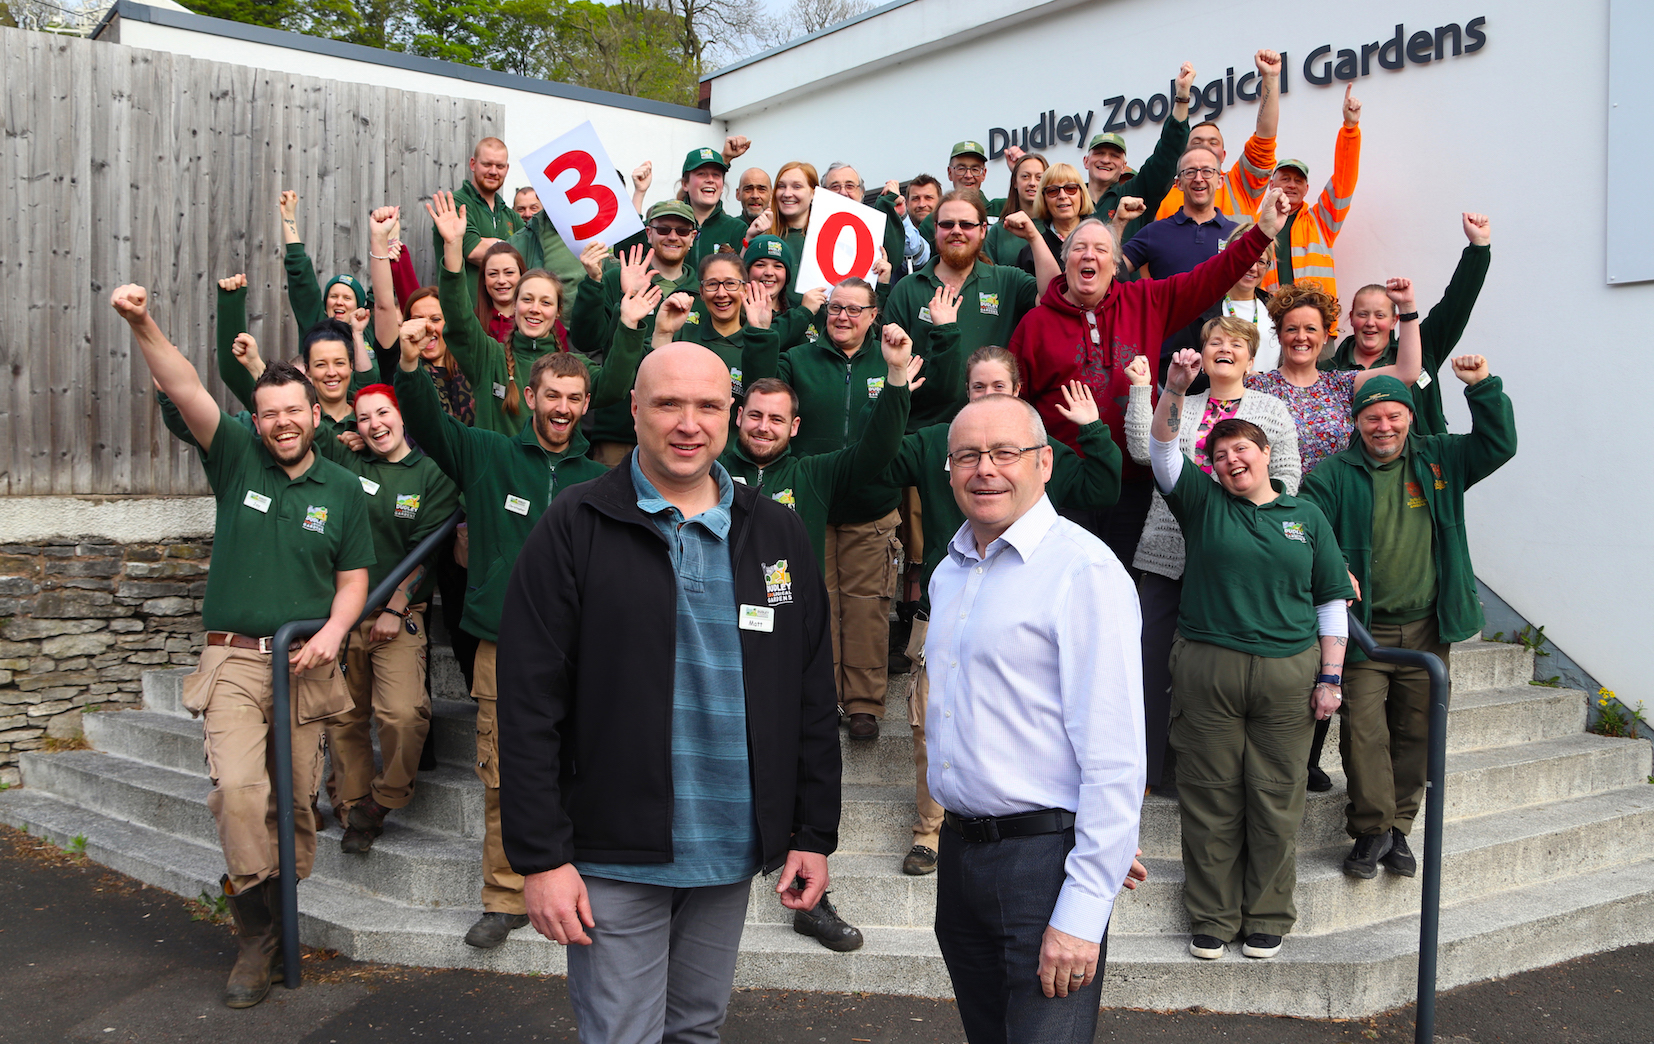 Matt (pictured left front) is congratulated by Zoo Director Derek Grove (right) and the team from Dudley Zoo.